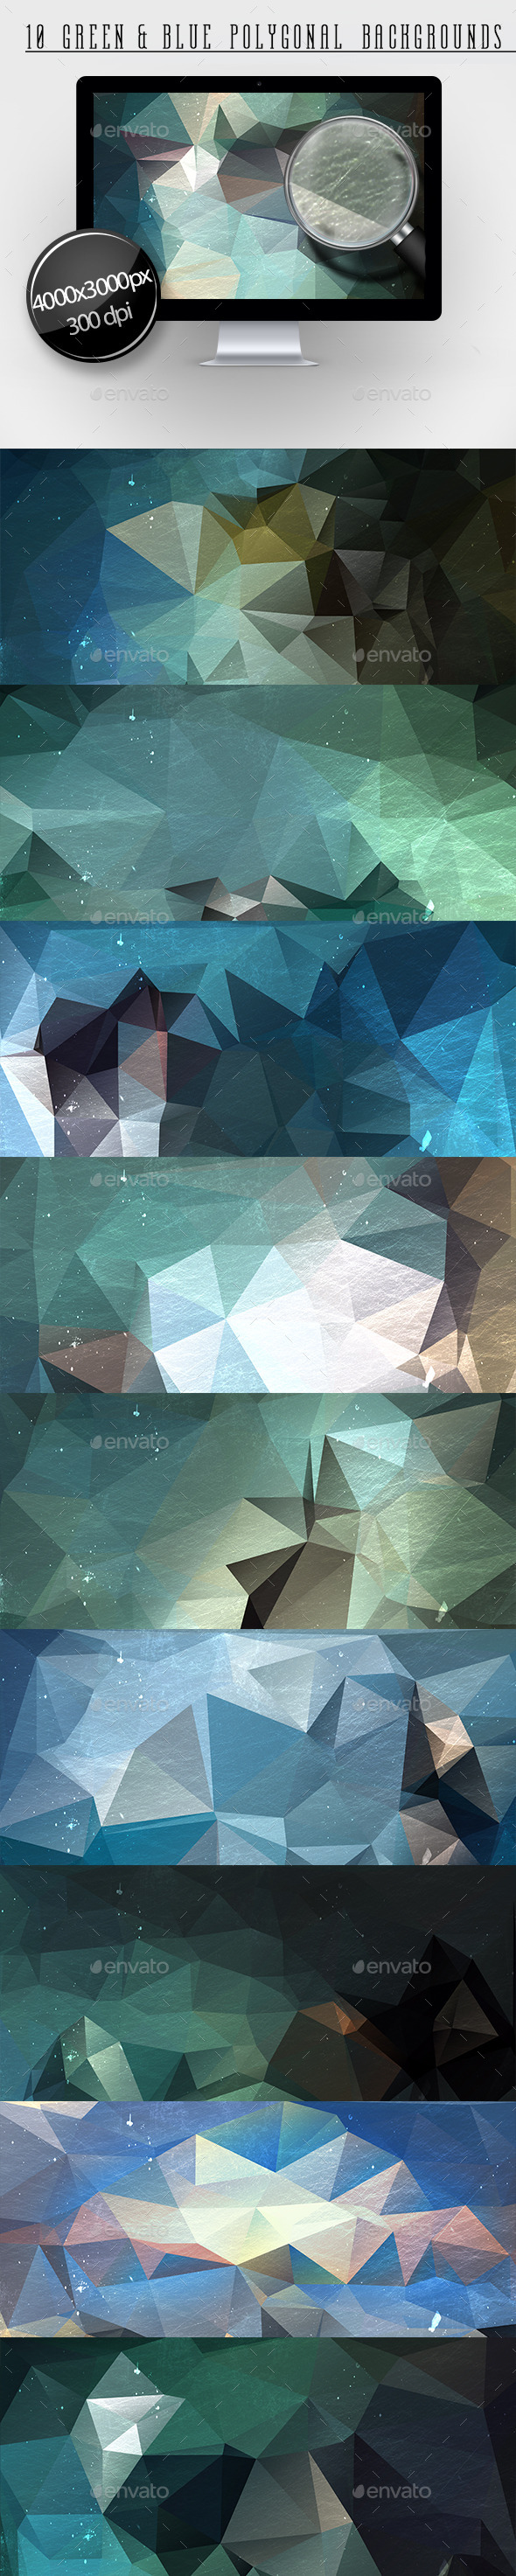 GraphicRiver 10 Green & Blue Polygonal Backgrounds 11608048